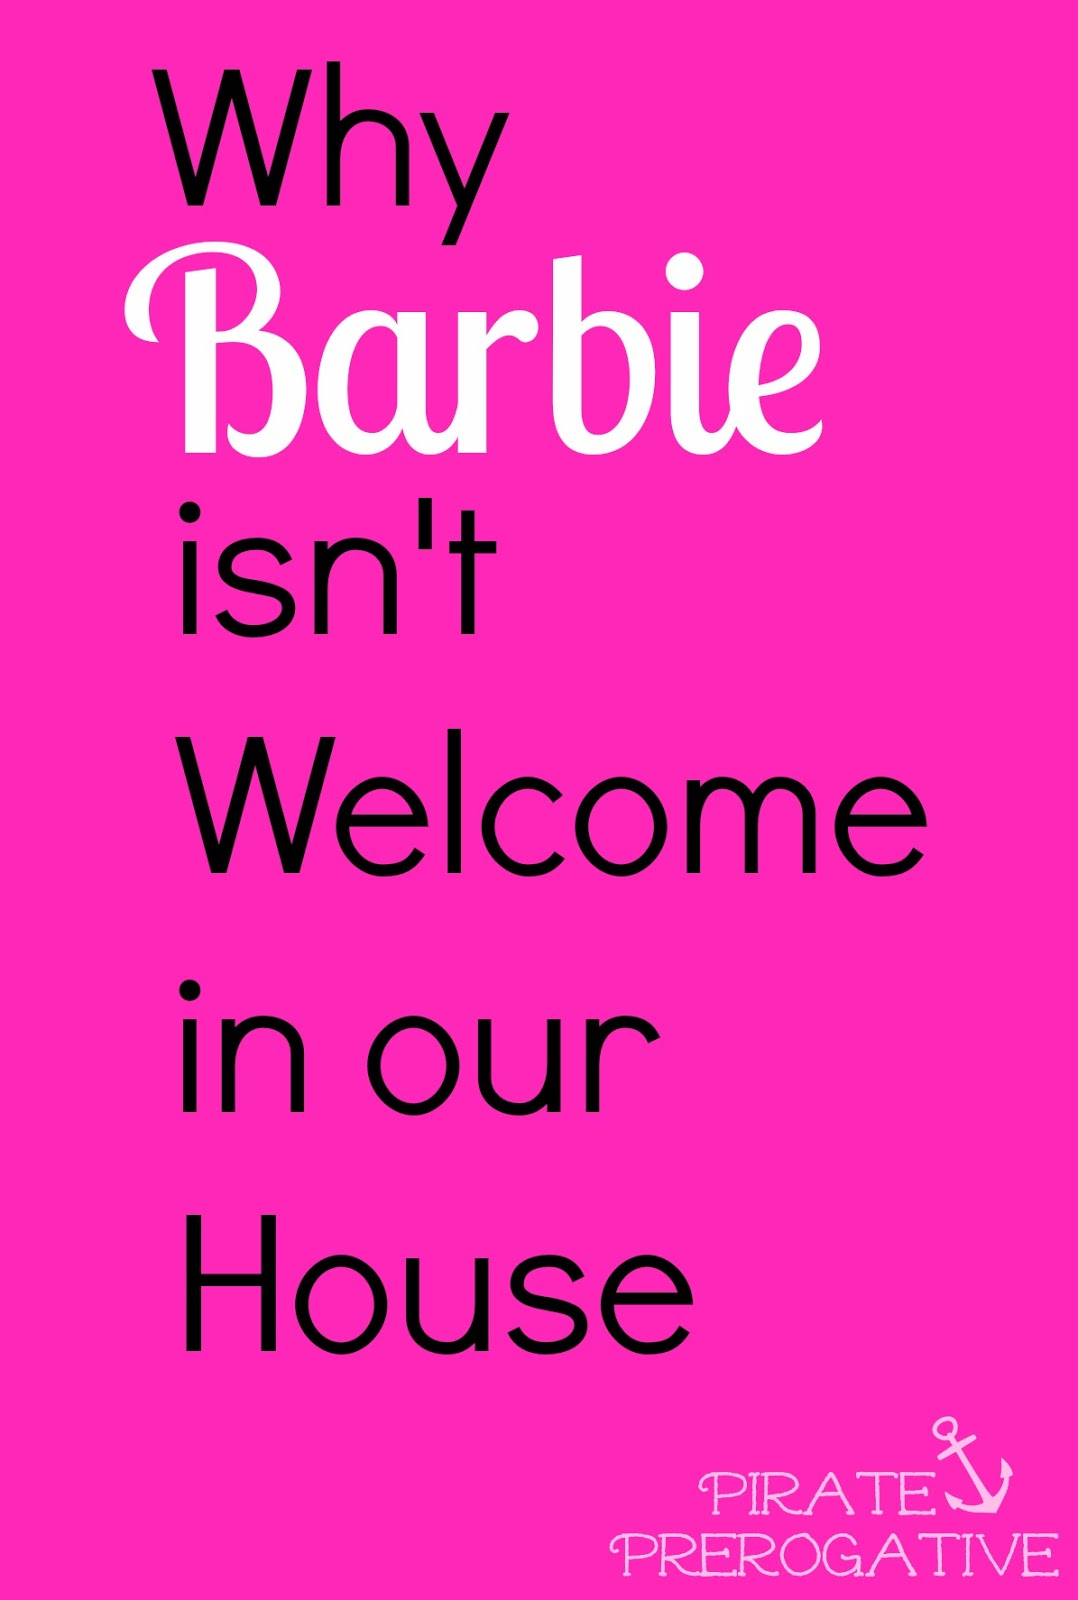 Why Barbie isn't Welcome in our House: A winning argument against the iconic doll.